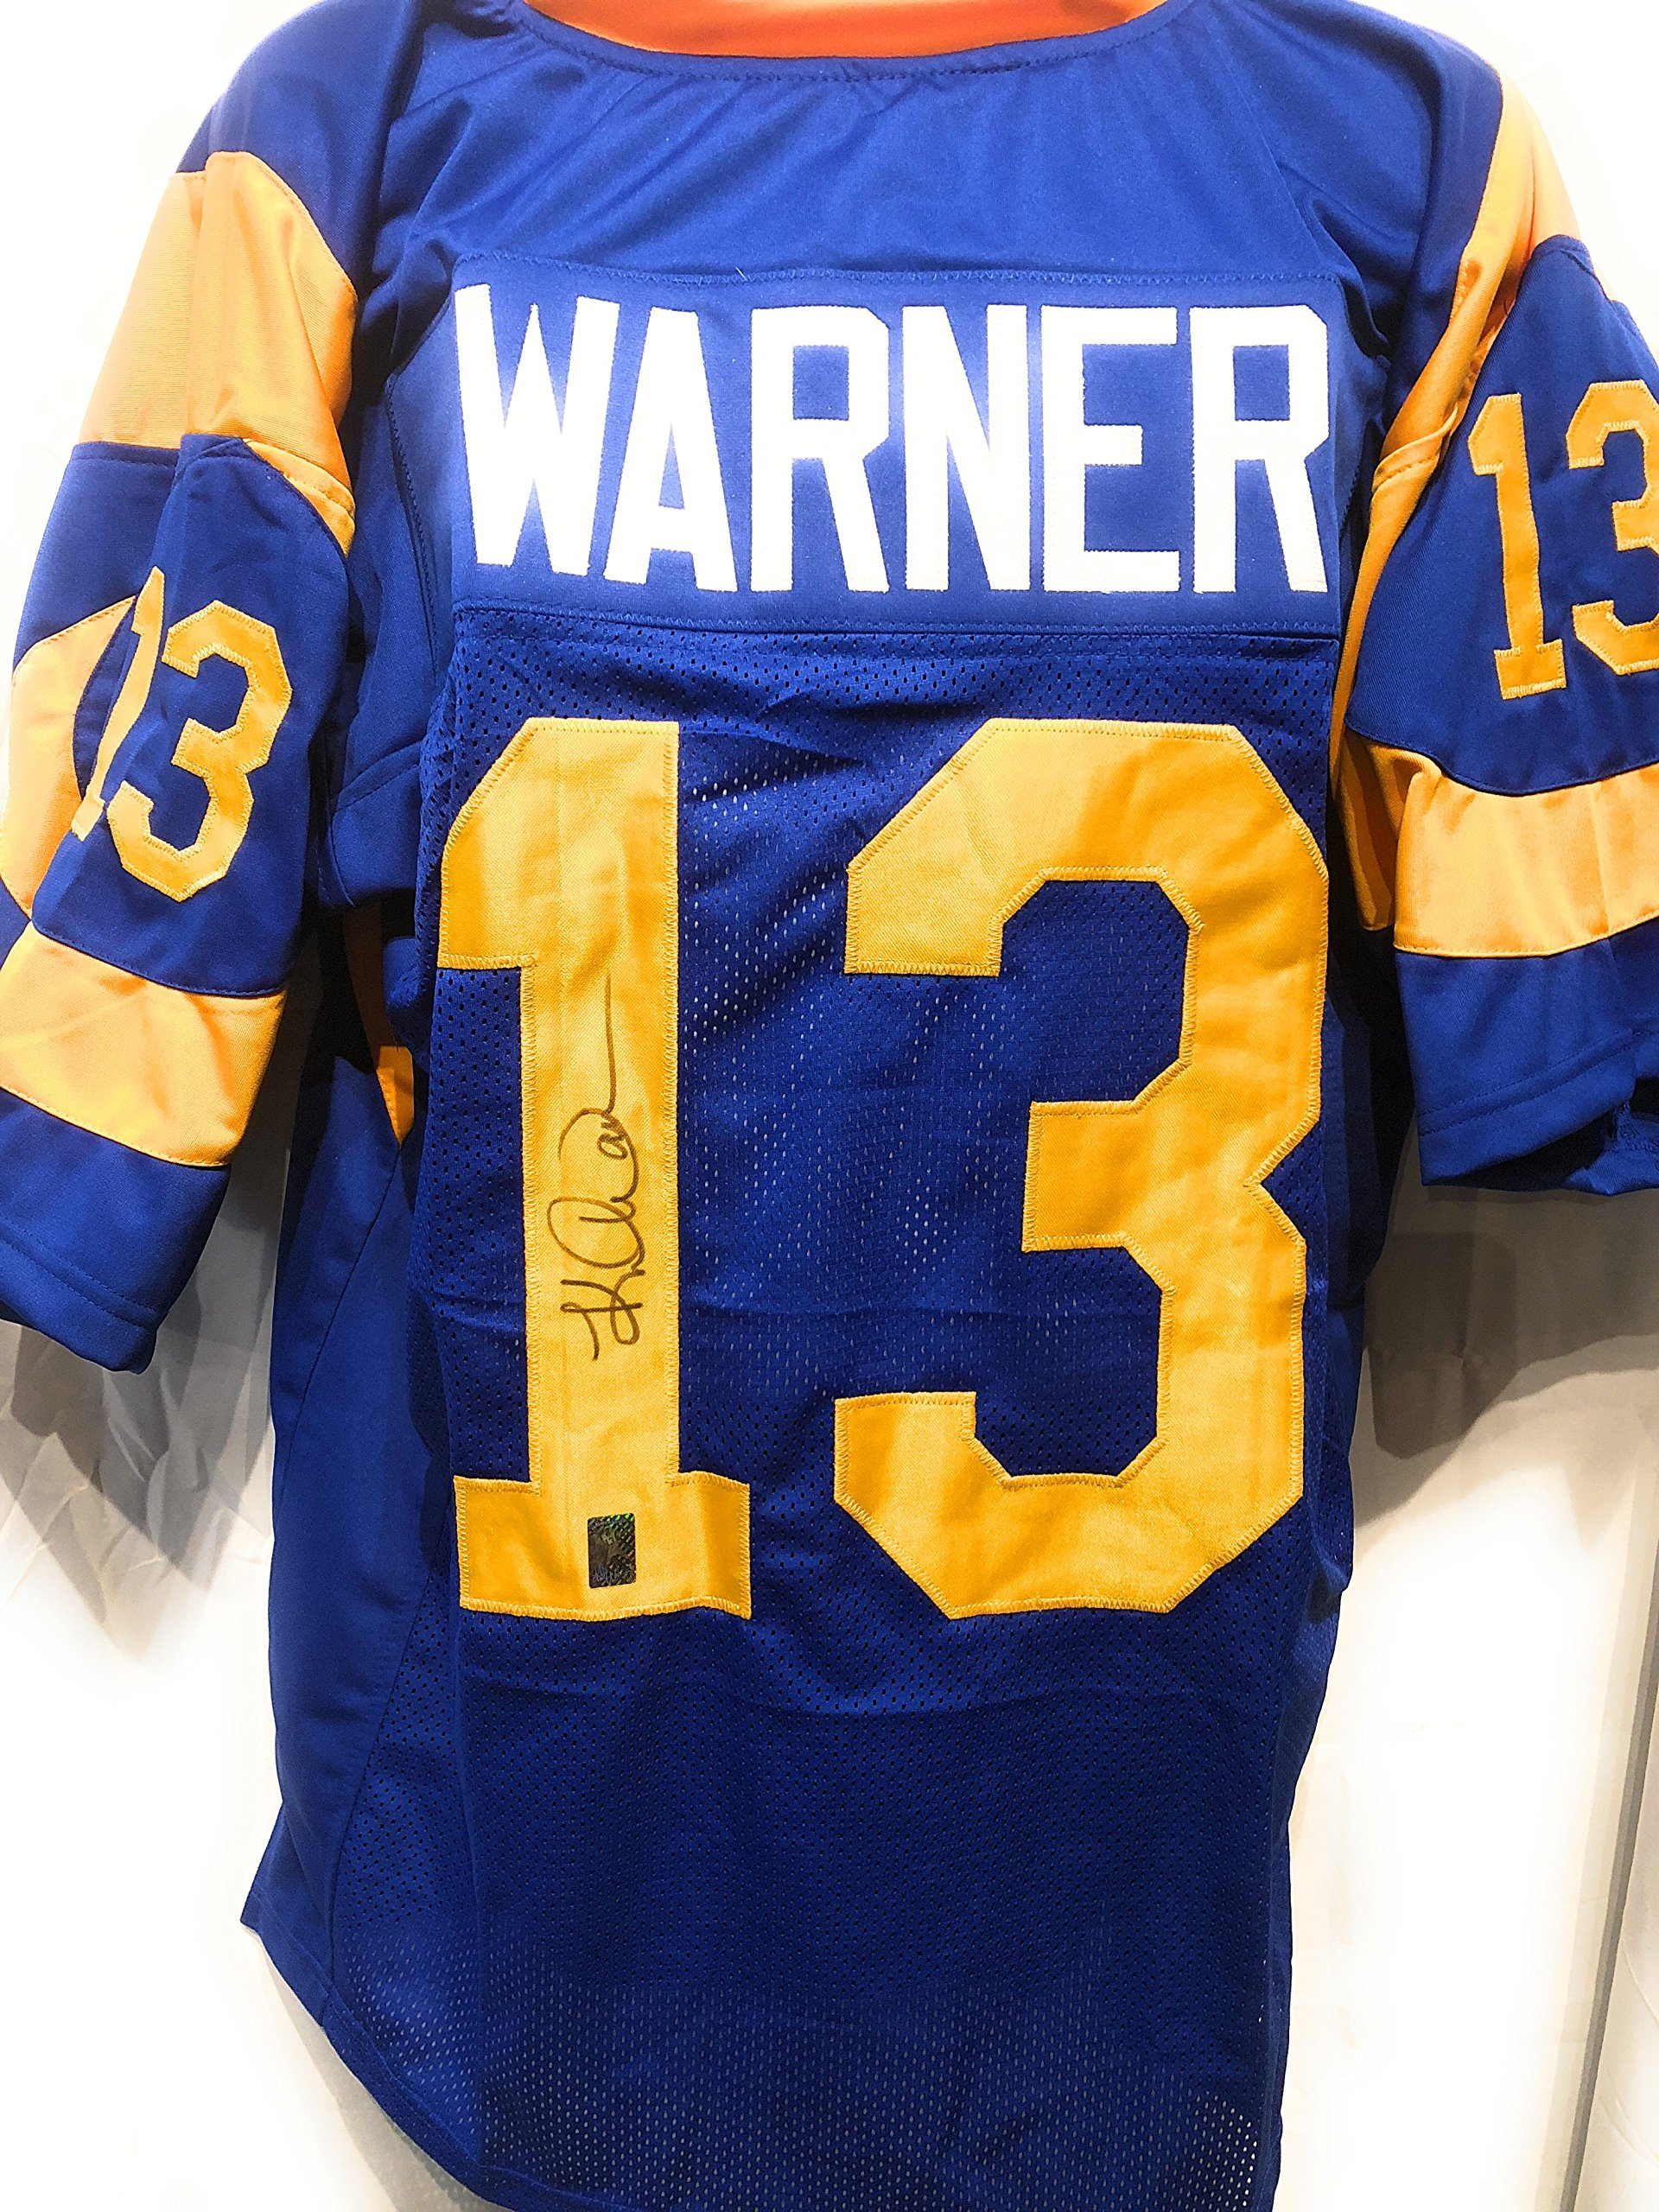 Kurt Warner St. Louis Rams Signed Autograph Custom Jersey Warner Athlete Hologram